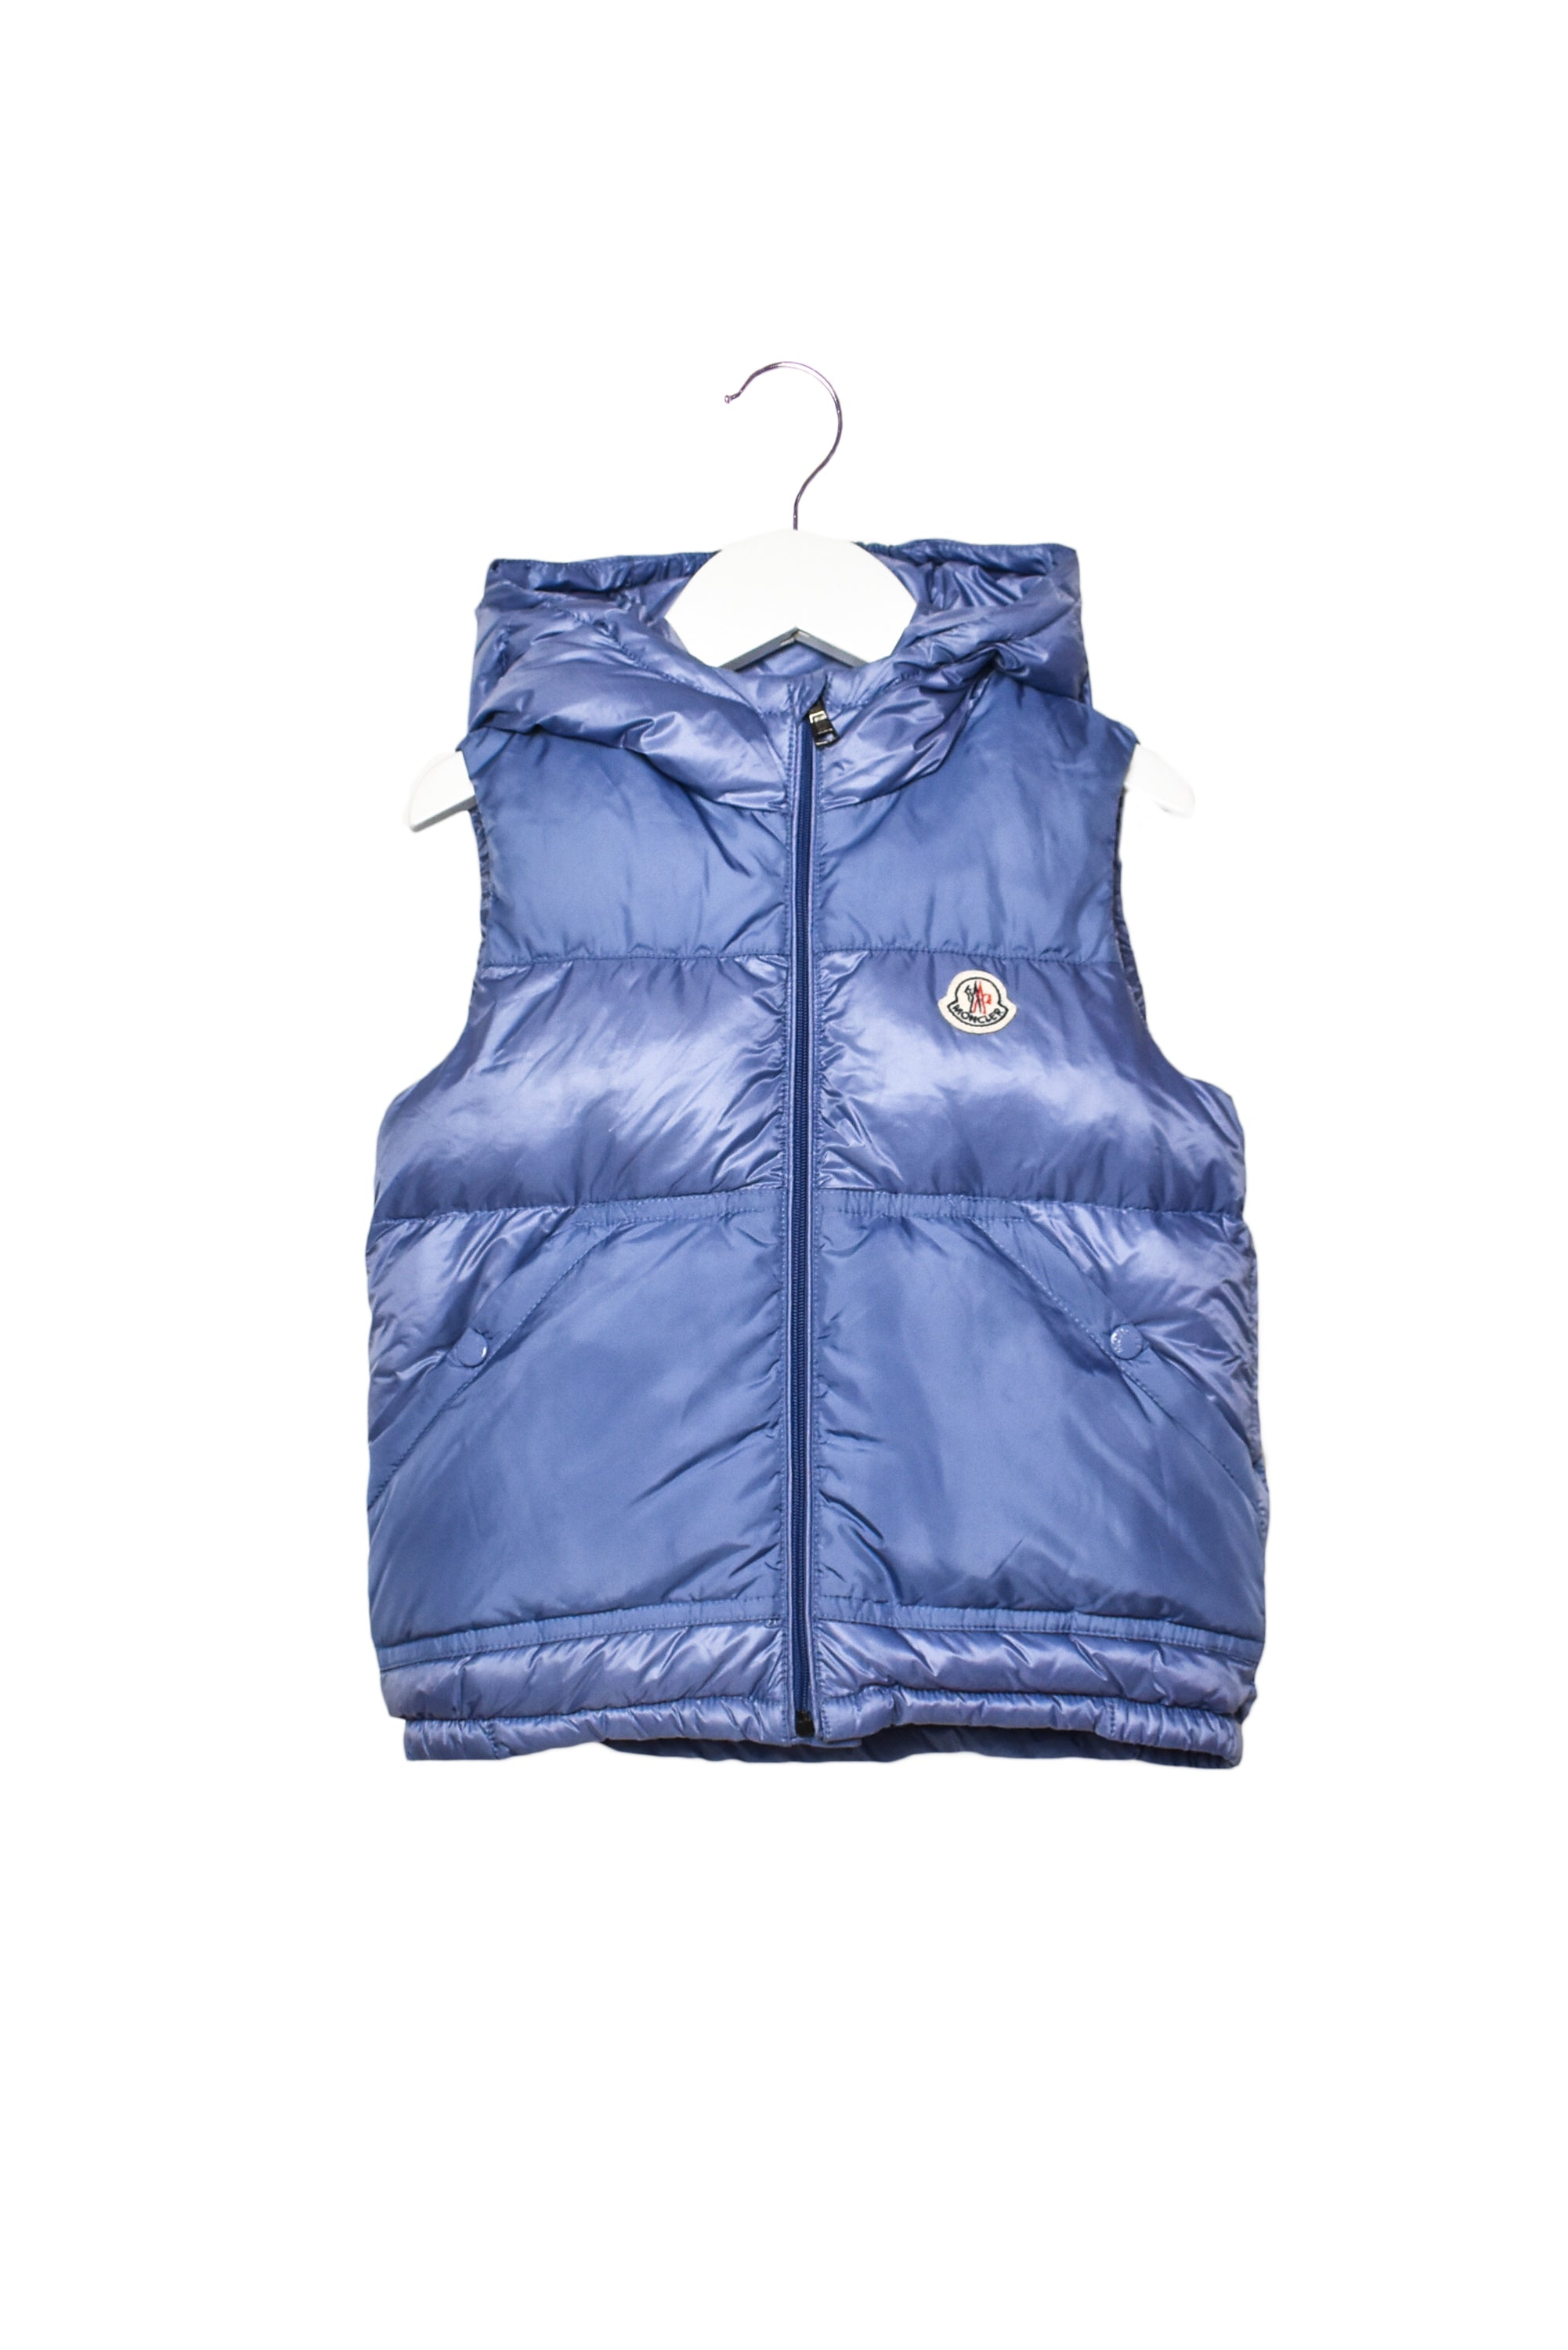 10012064 Moncler Kids~Puffer Vest 3T at Retykle